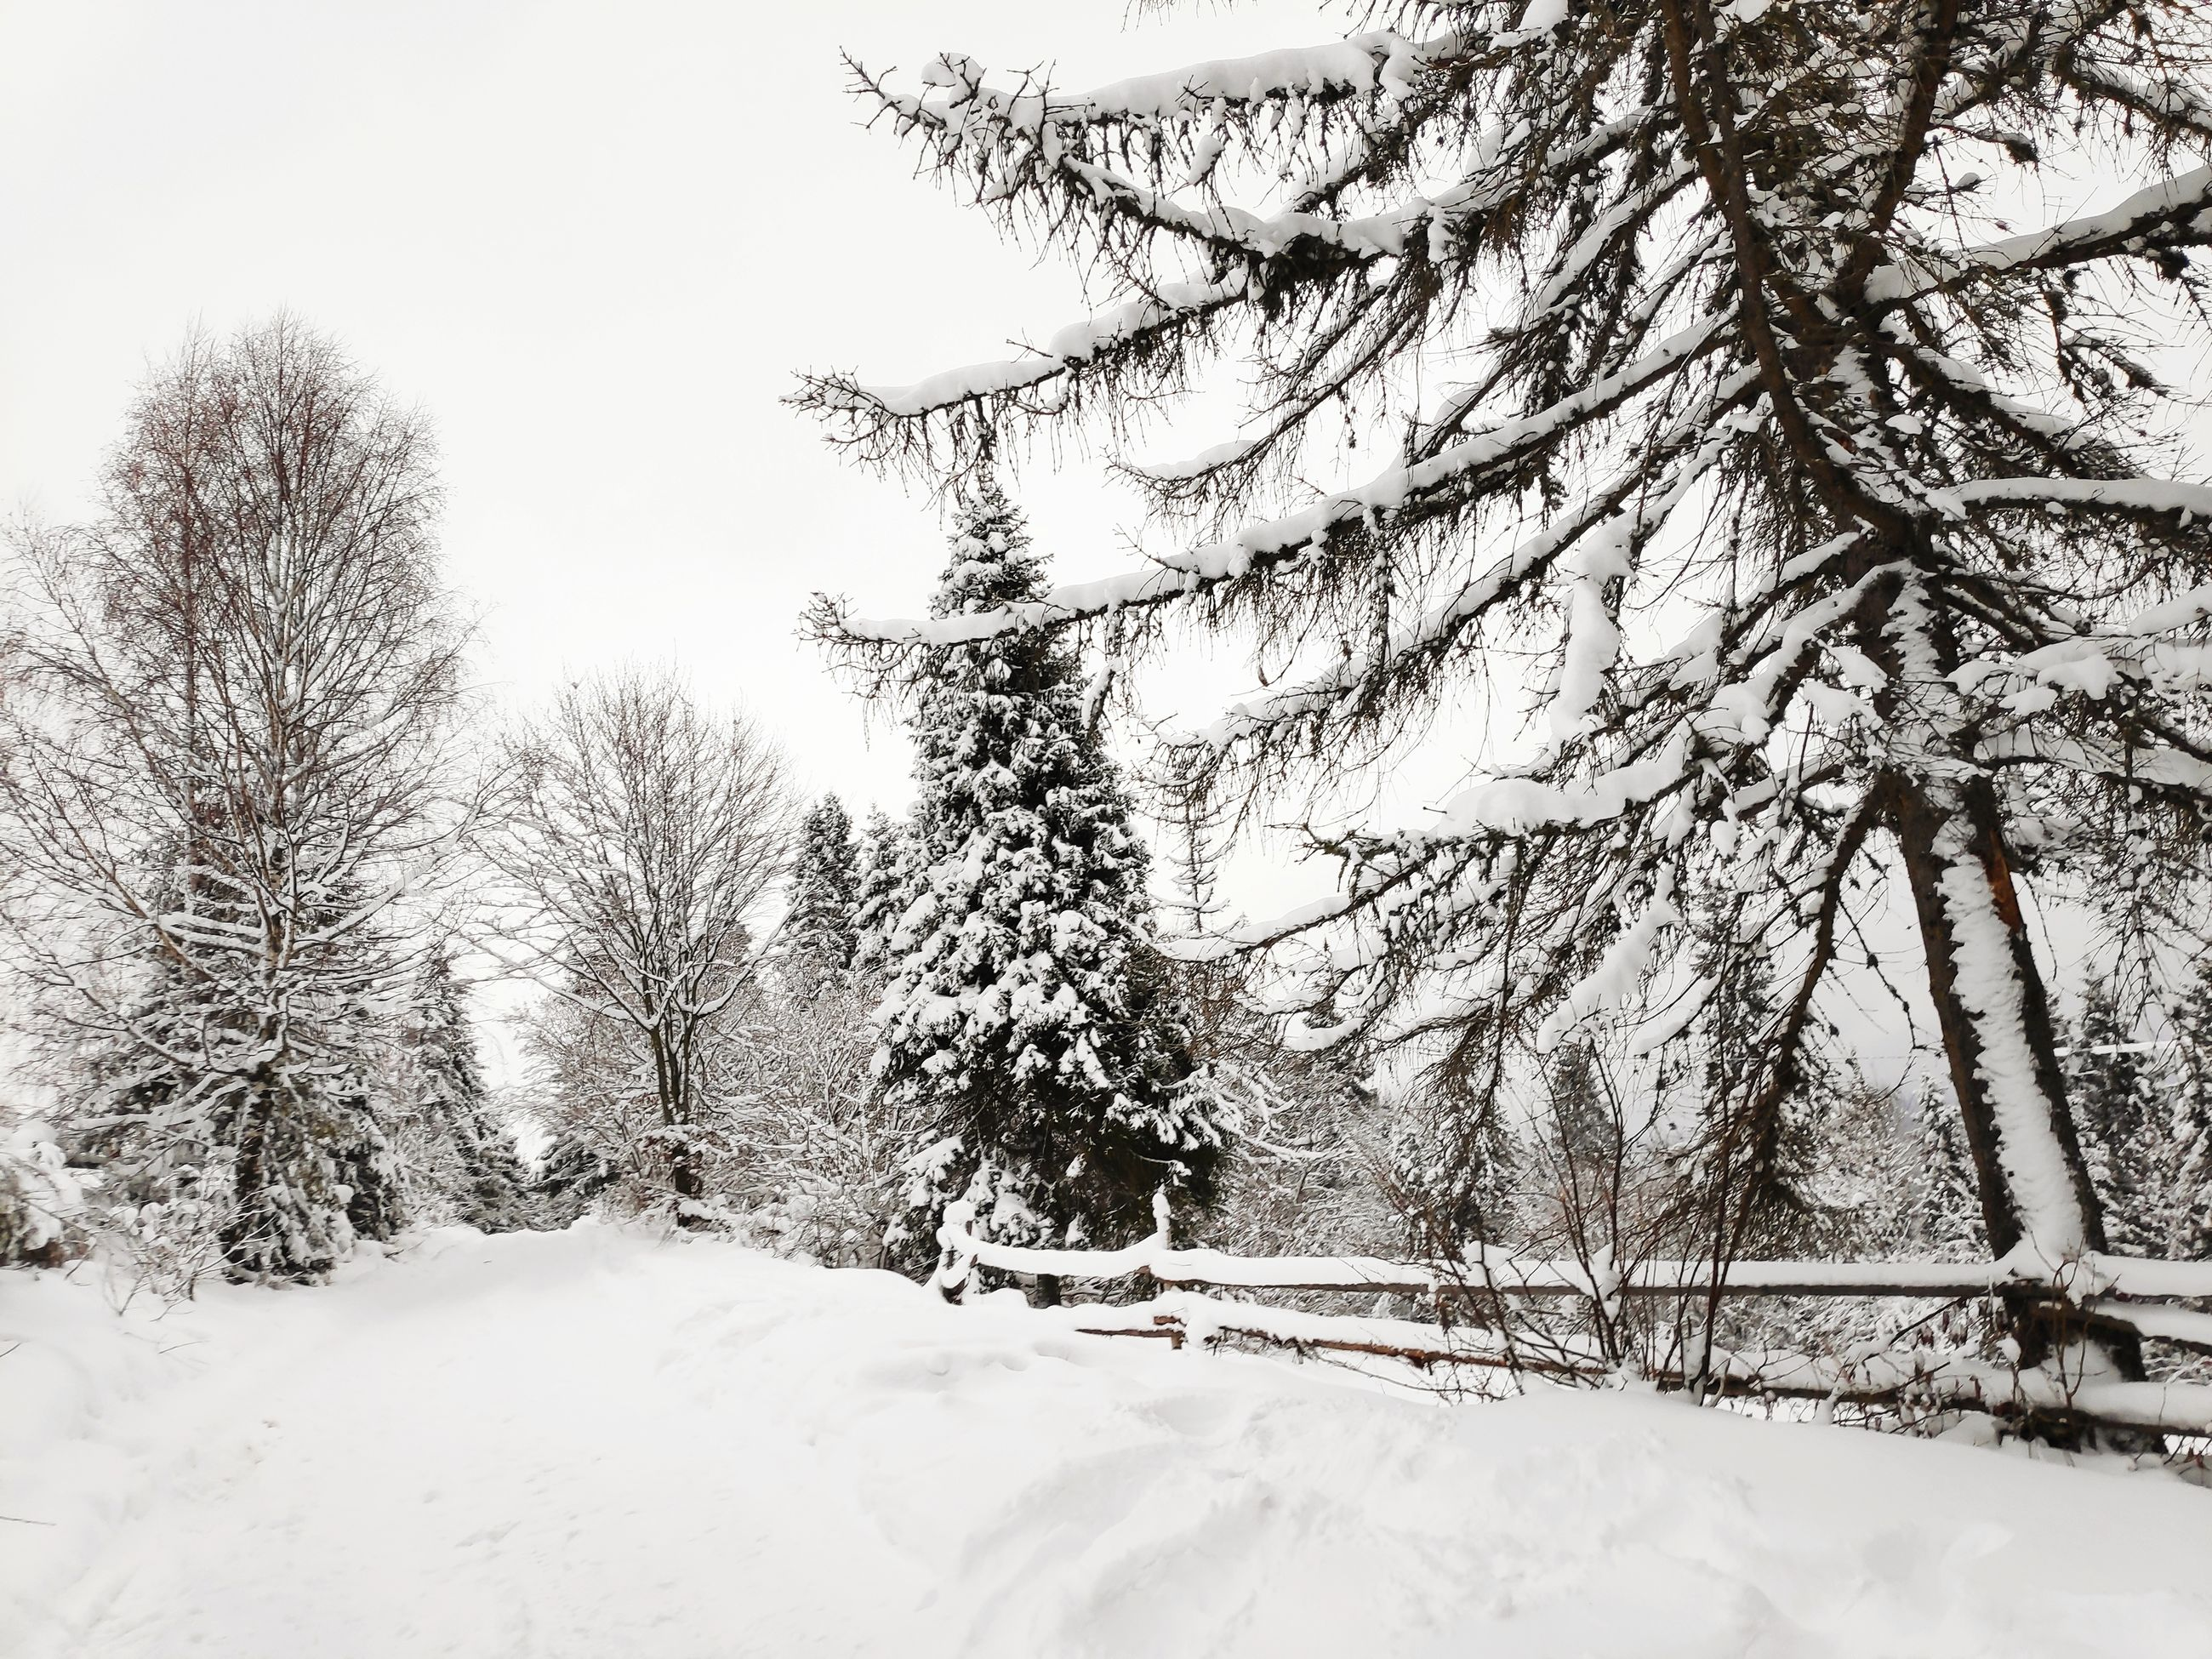 snow, cold temperature, tree, winter, plant, beauty in nature, tranquility, covering, nature, land, no people, branch, white color, tranquil scene, scenics - nature, day, environment, bare tree, frozen, outdoors, snowing, coniferous tree